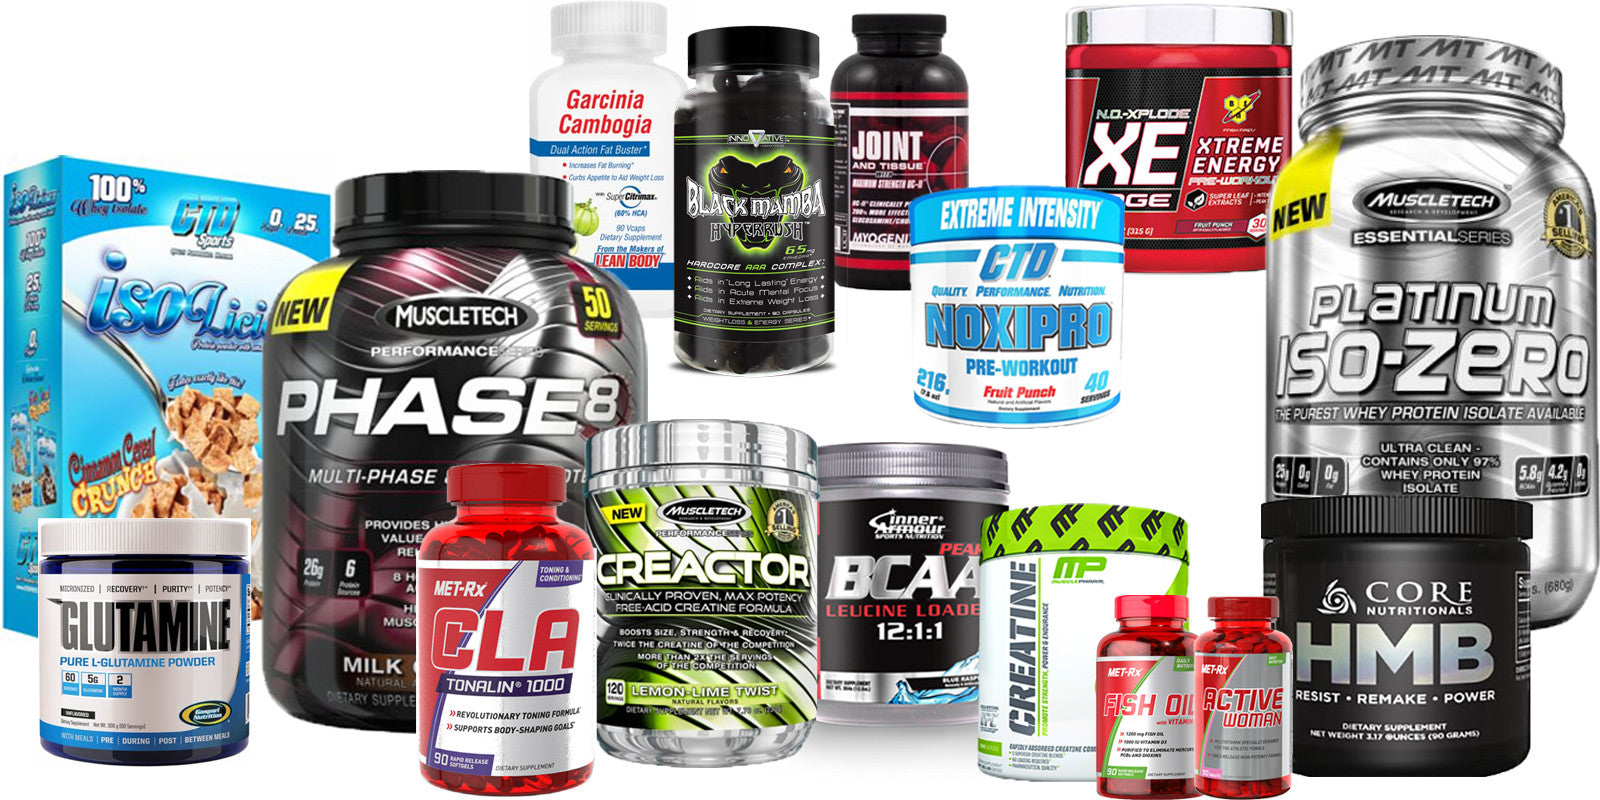 FITNESS AND NUTRITIONAL SUPPLEMENTS